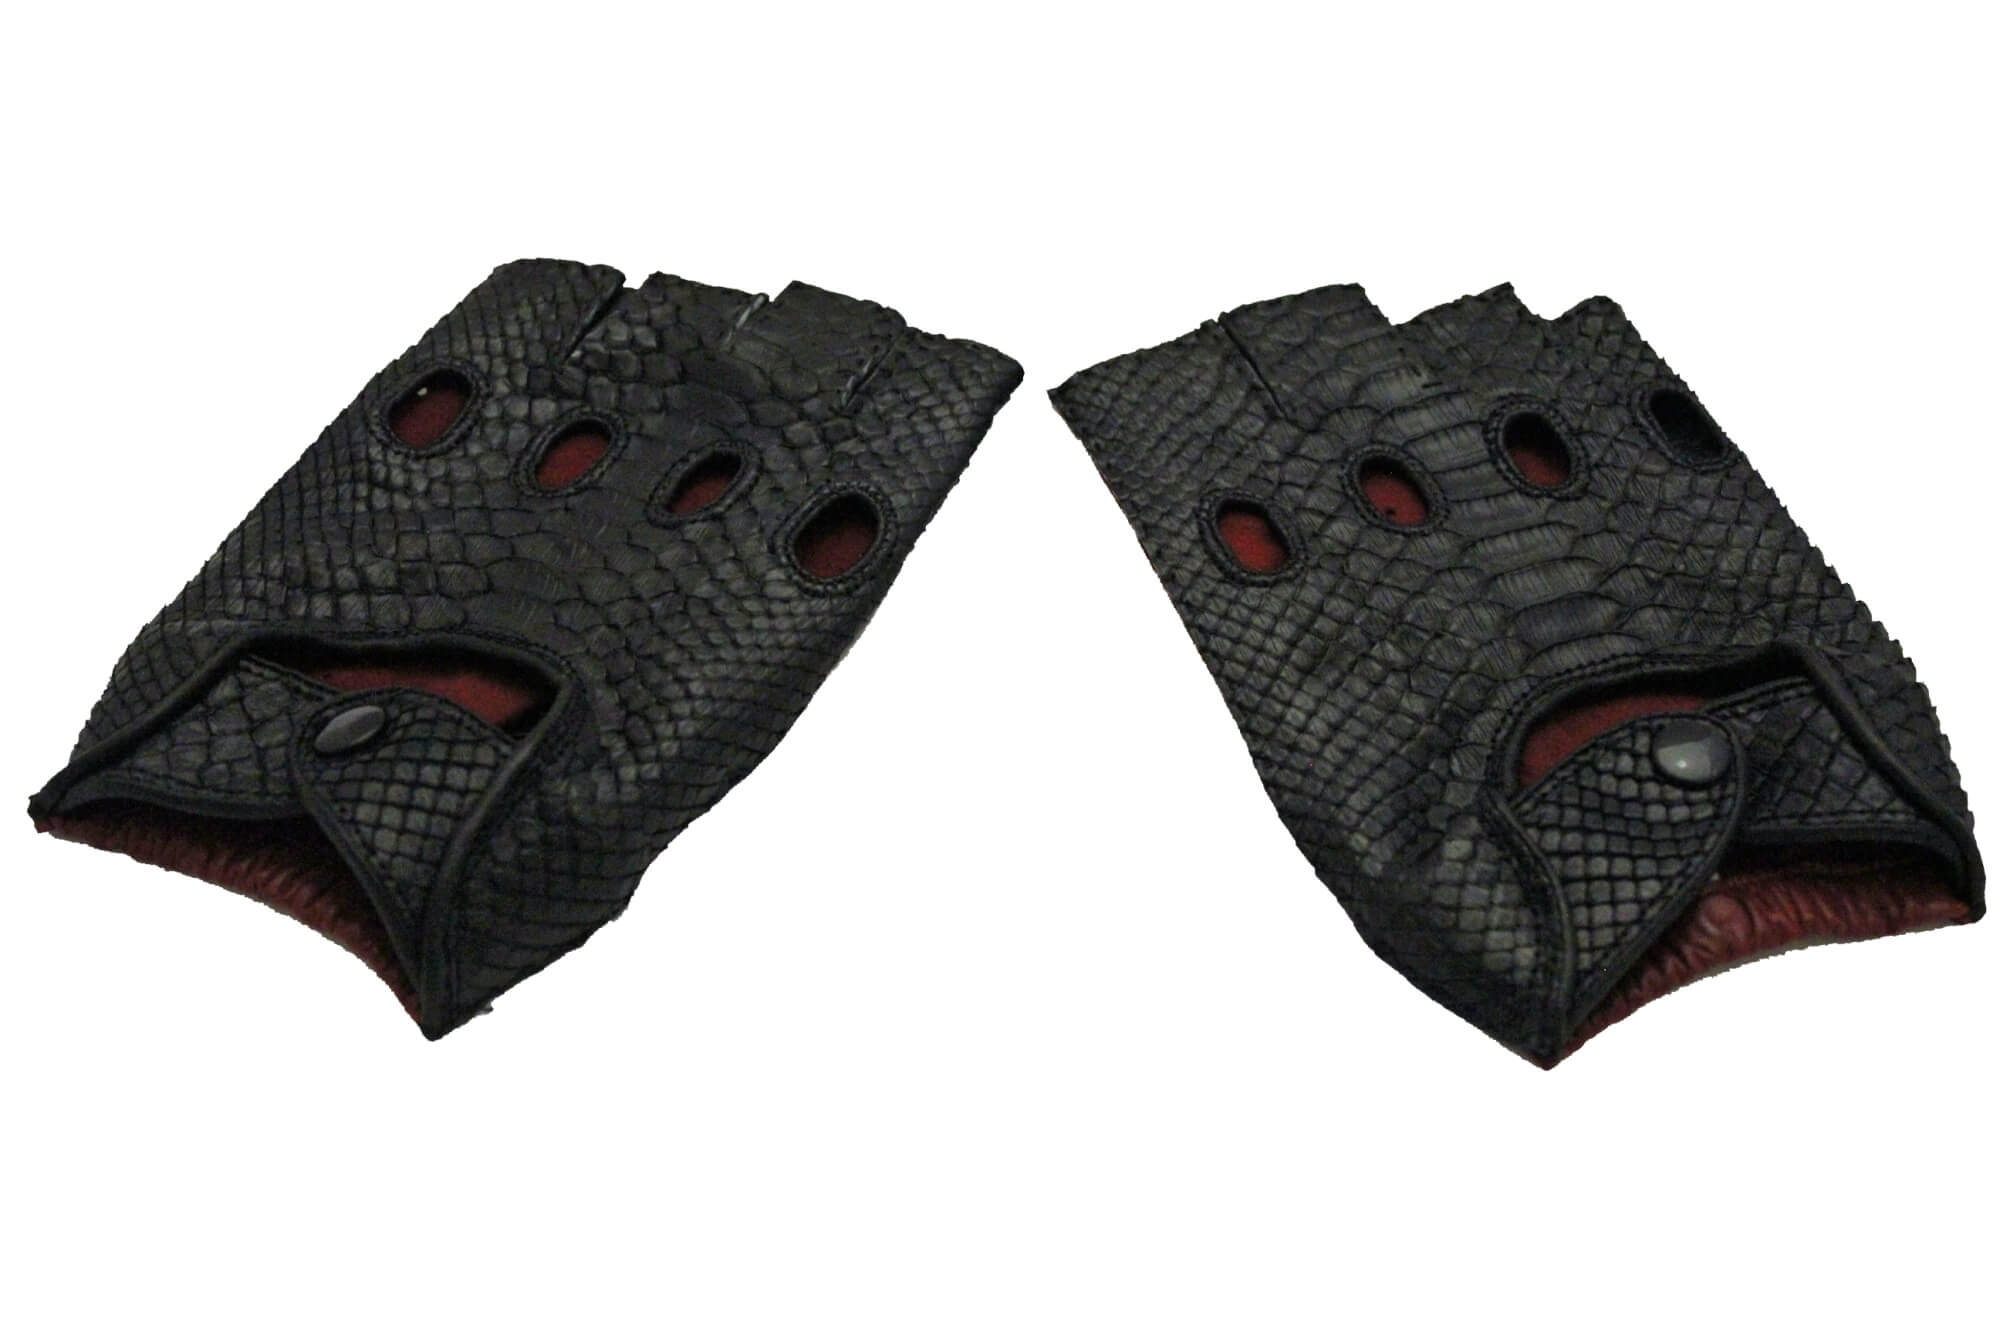 Fingerless Python Racing Gloves